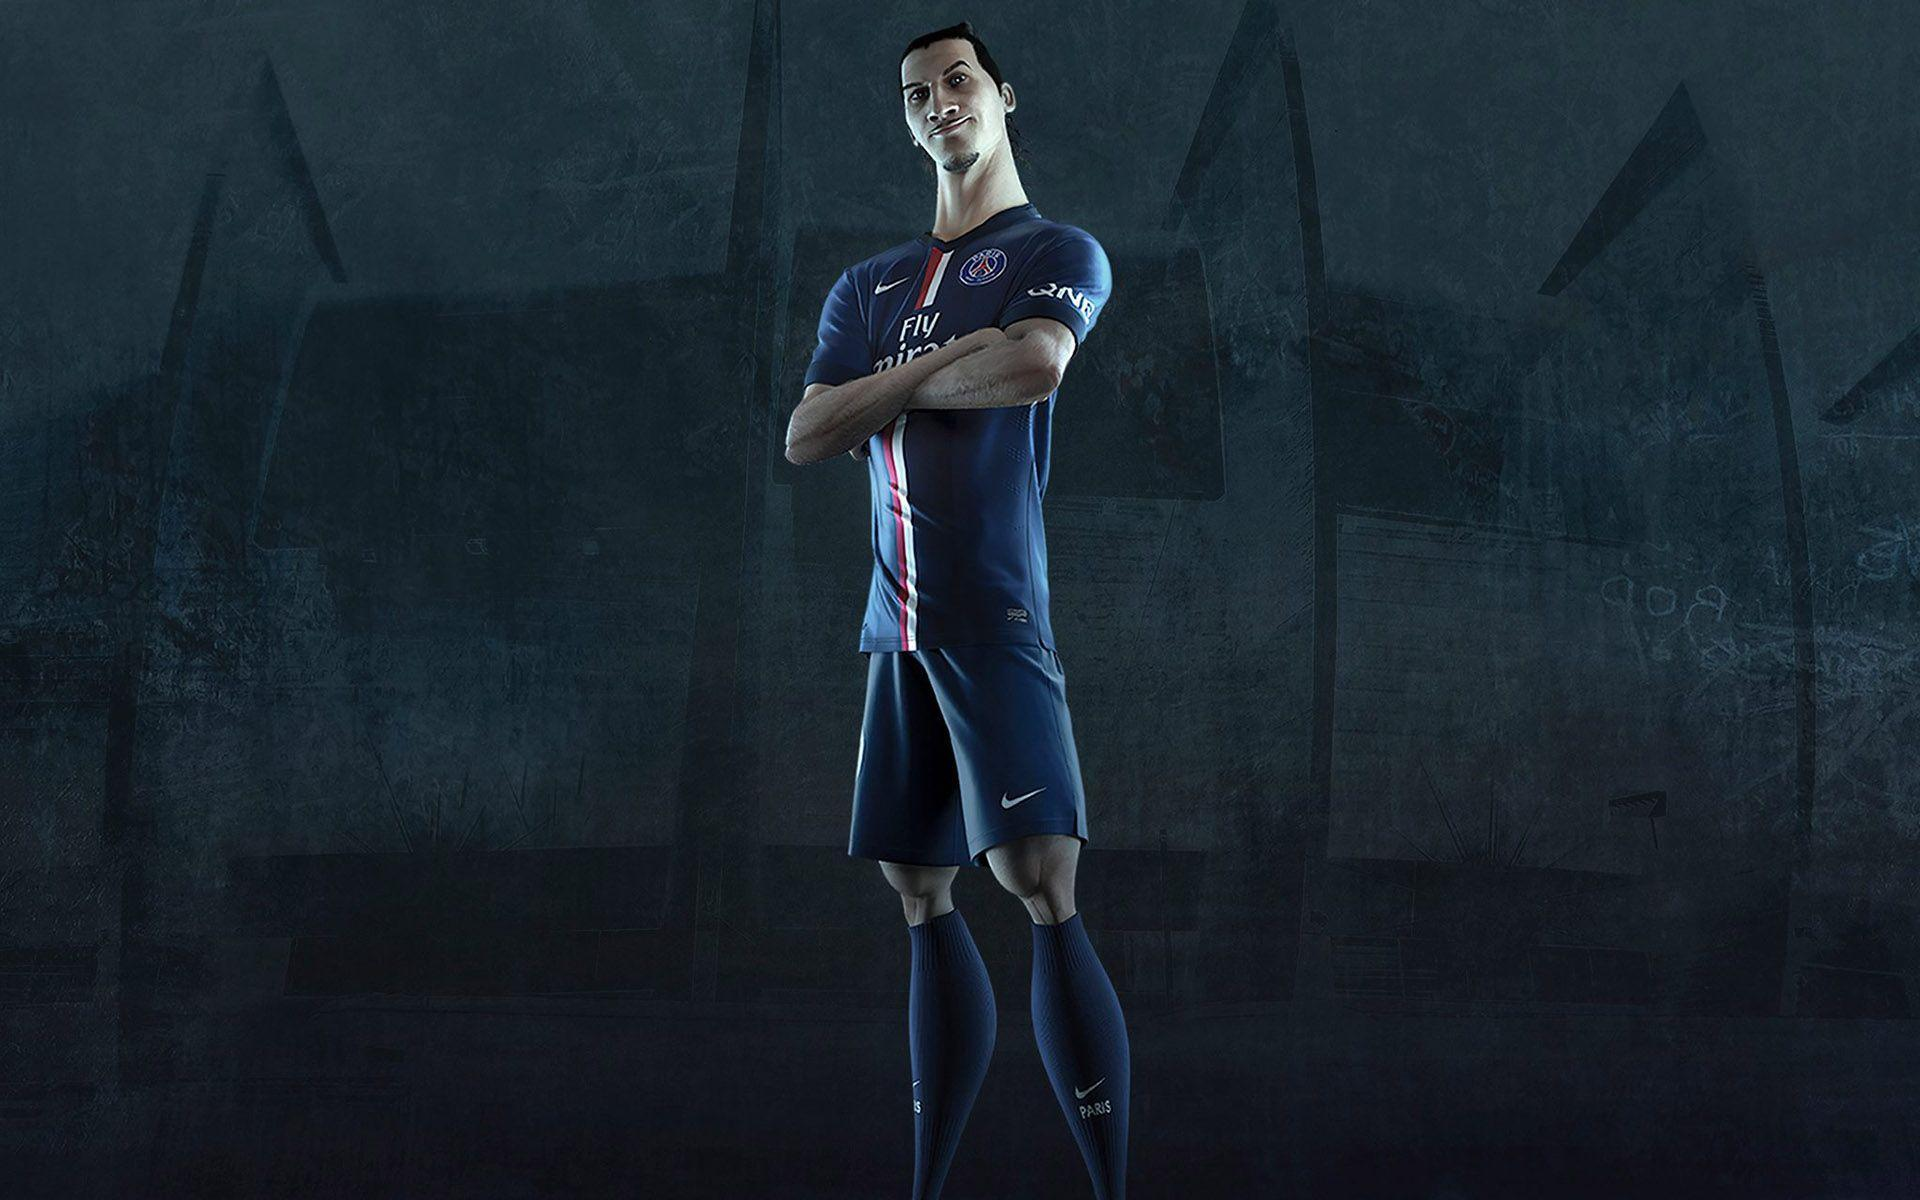 Zlatan Ibrahimovic PSG Jersey 2014 2015 Home Kit Wallpaper Free